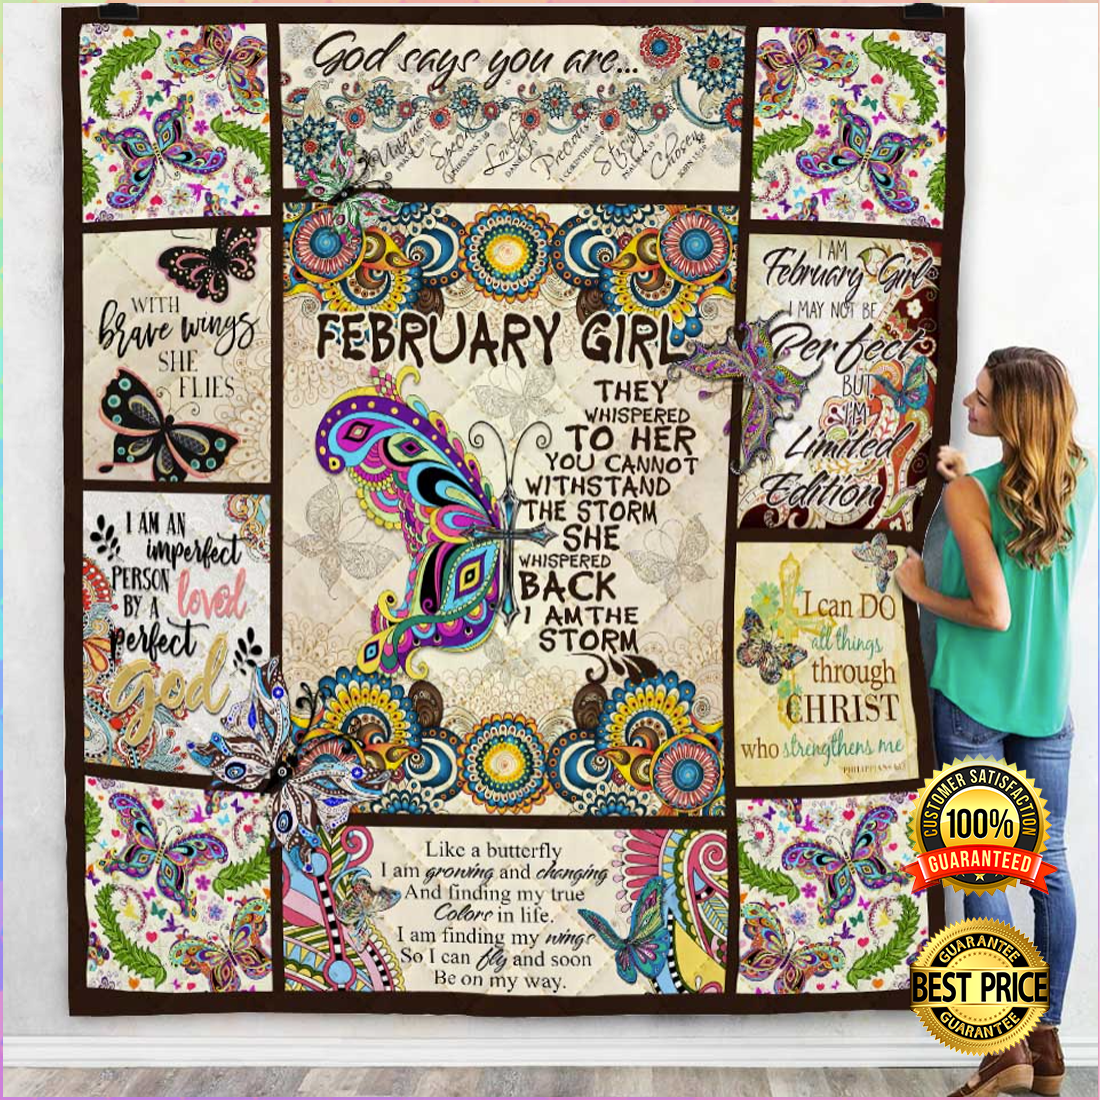 February Girl They Whispered To Her You Cannot Withstand The Storm Quilt 4